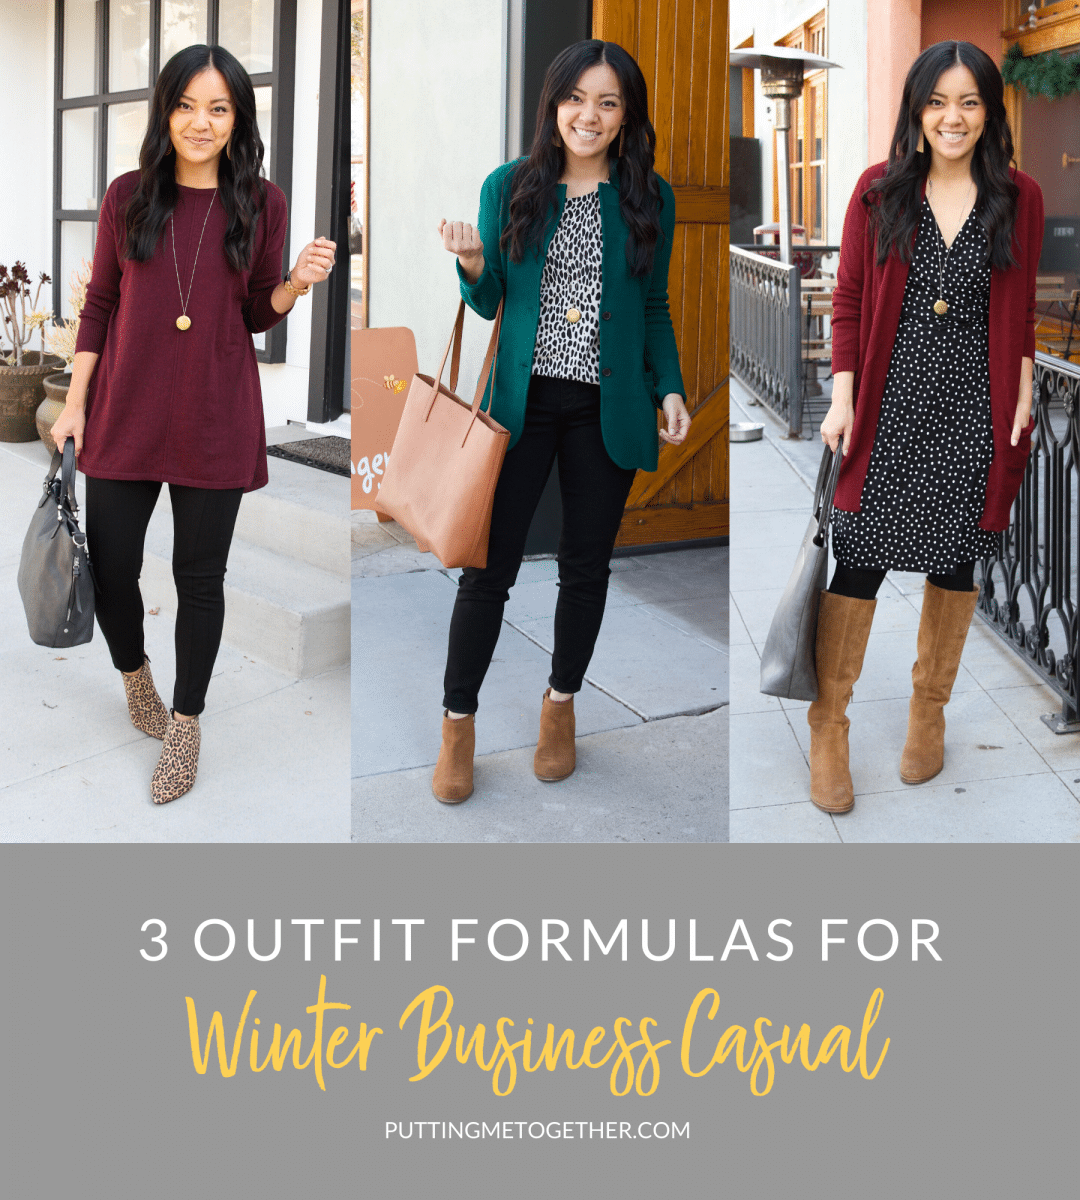 Winter Business Casual Outfit